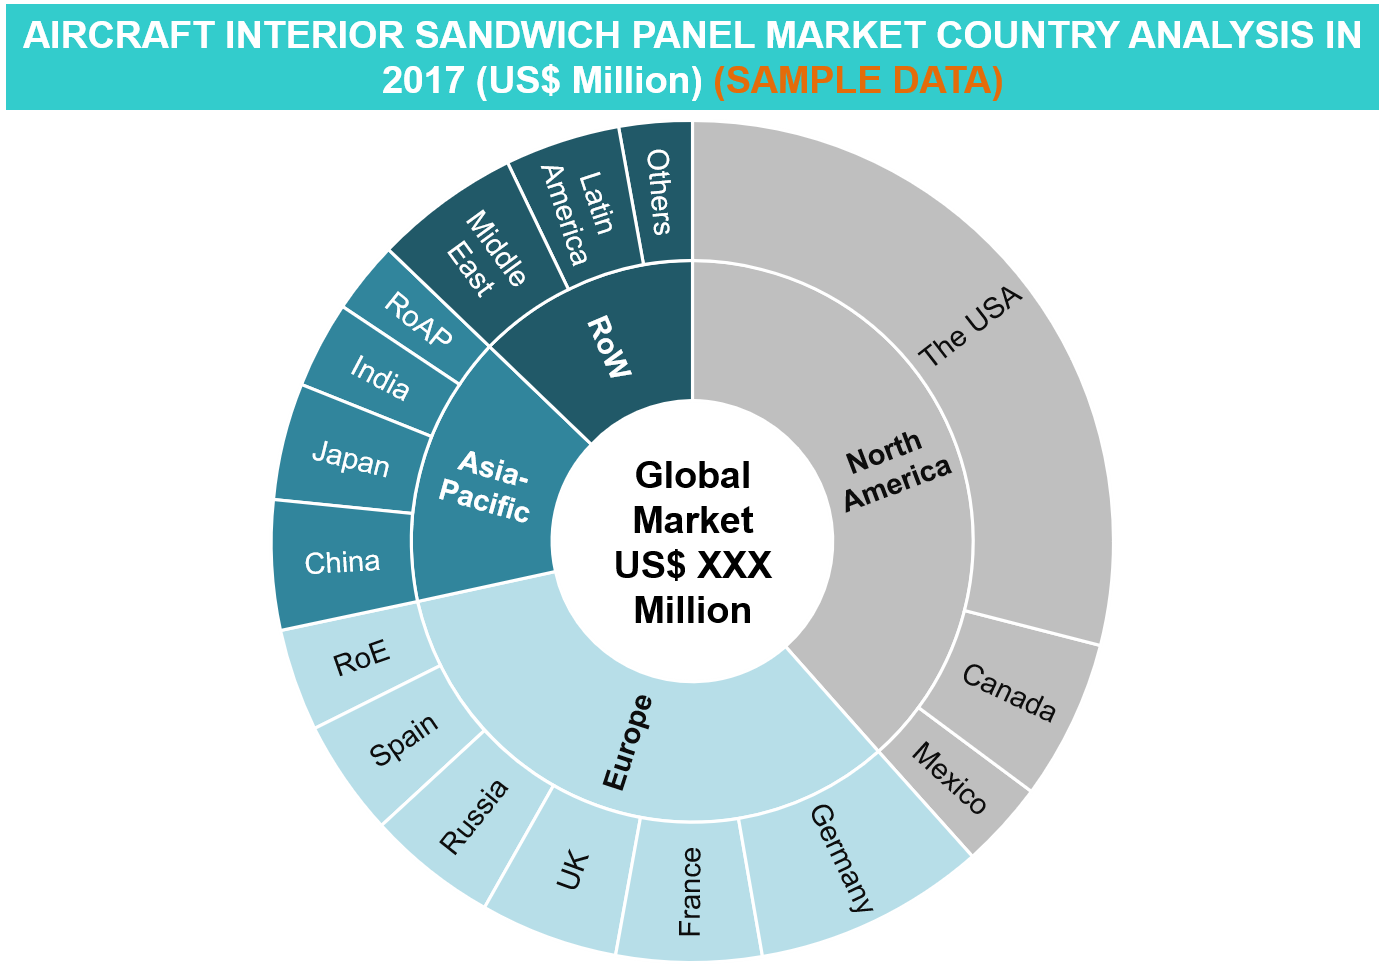 Aircraft Interior Sandwich Panel Market-Country Analysis